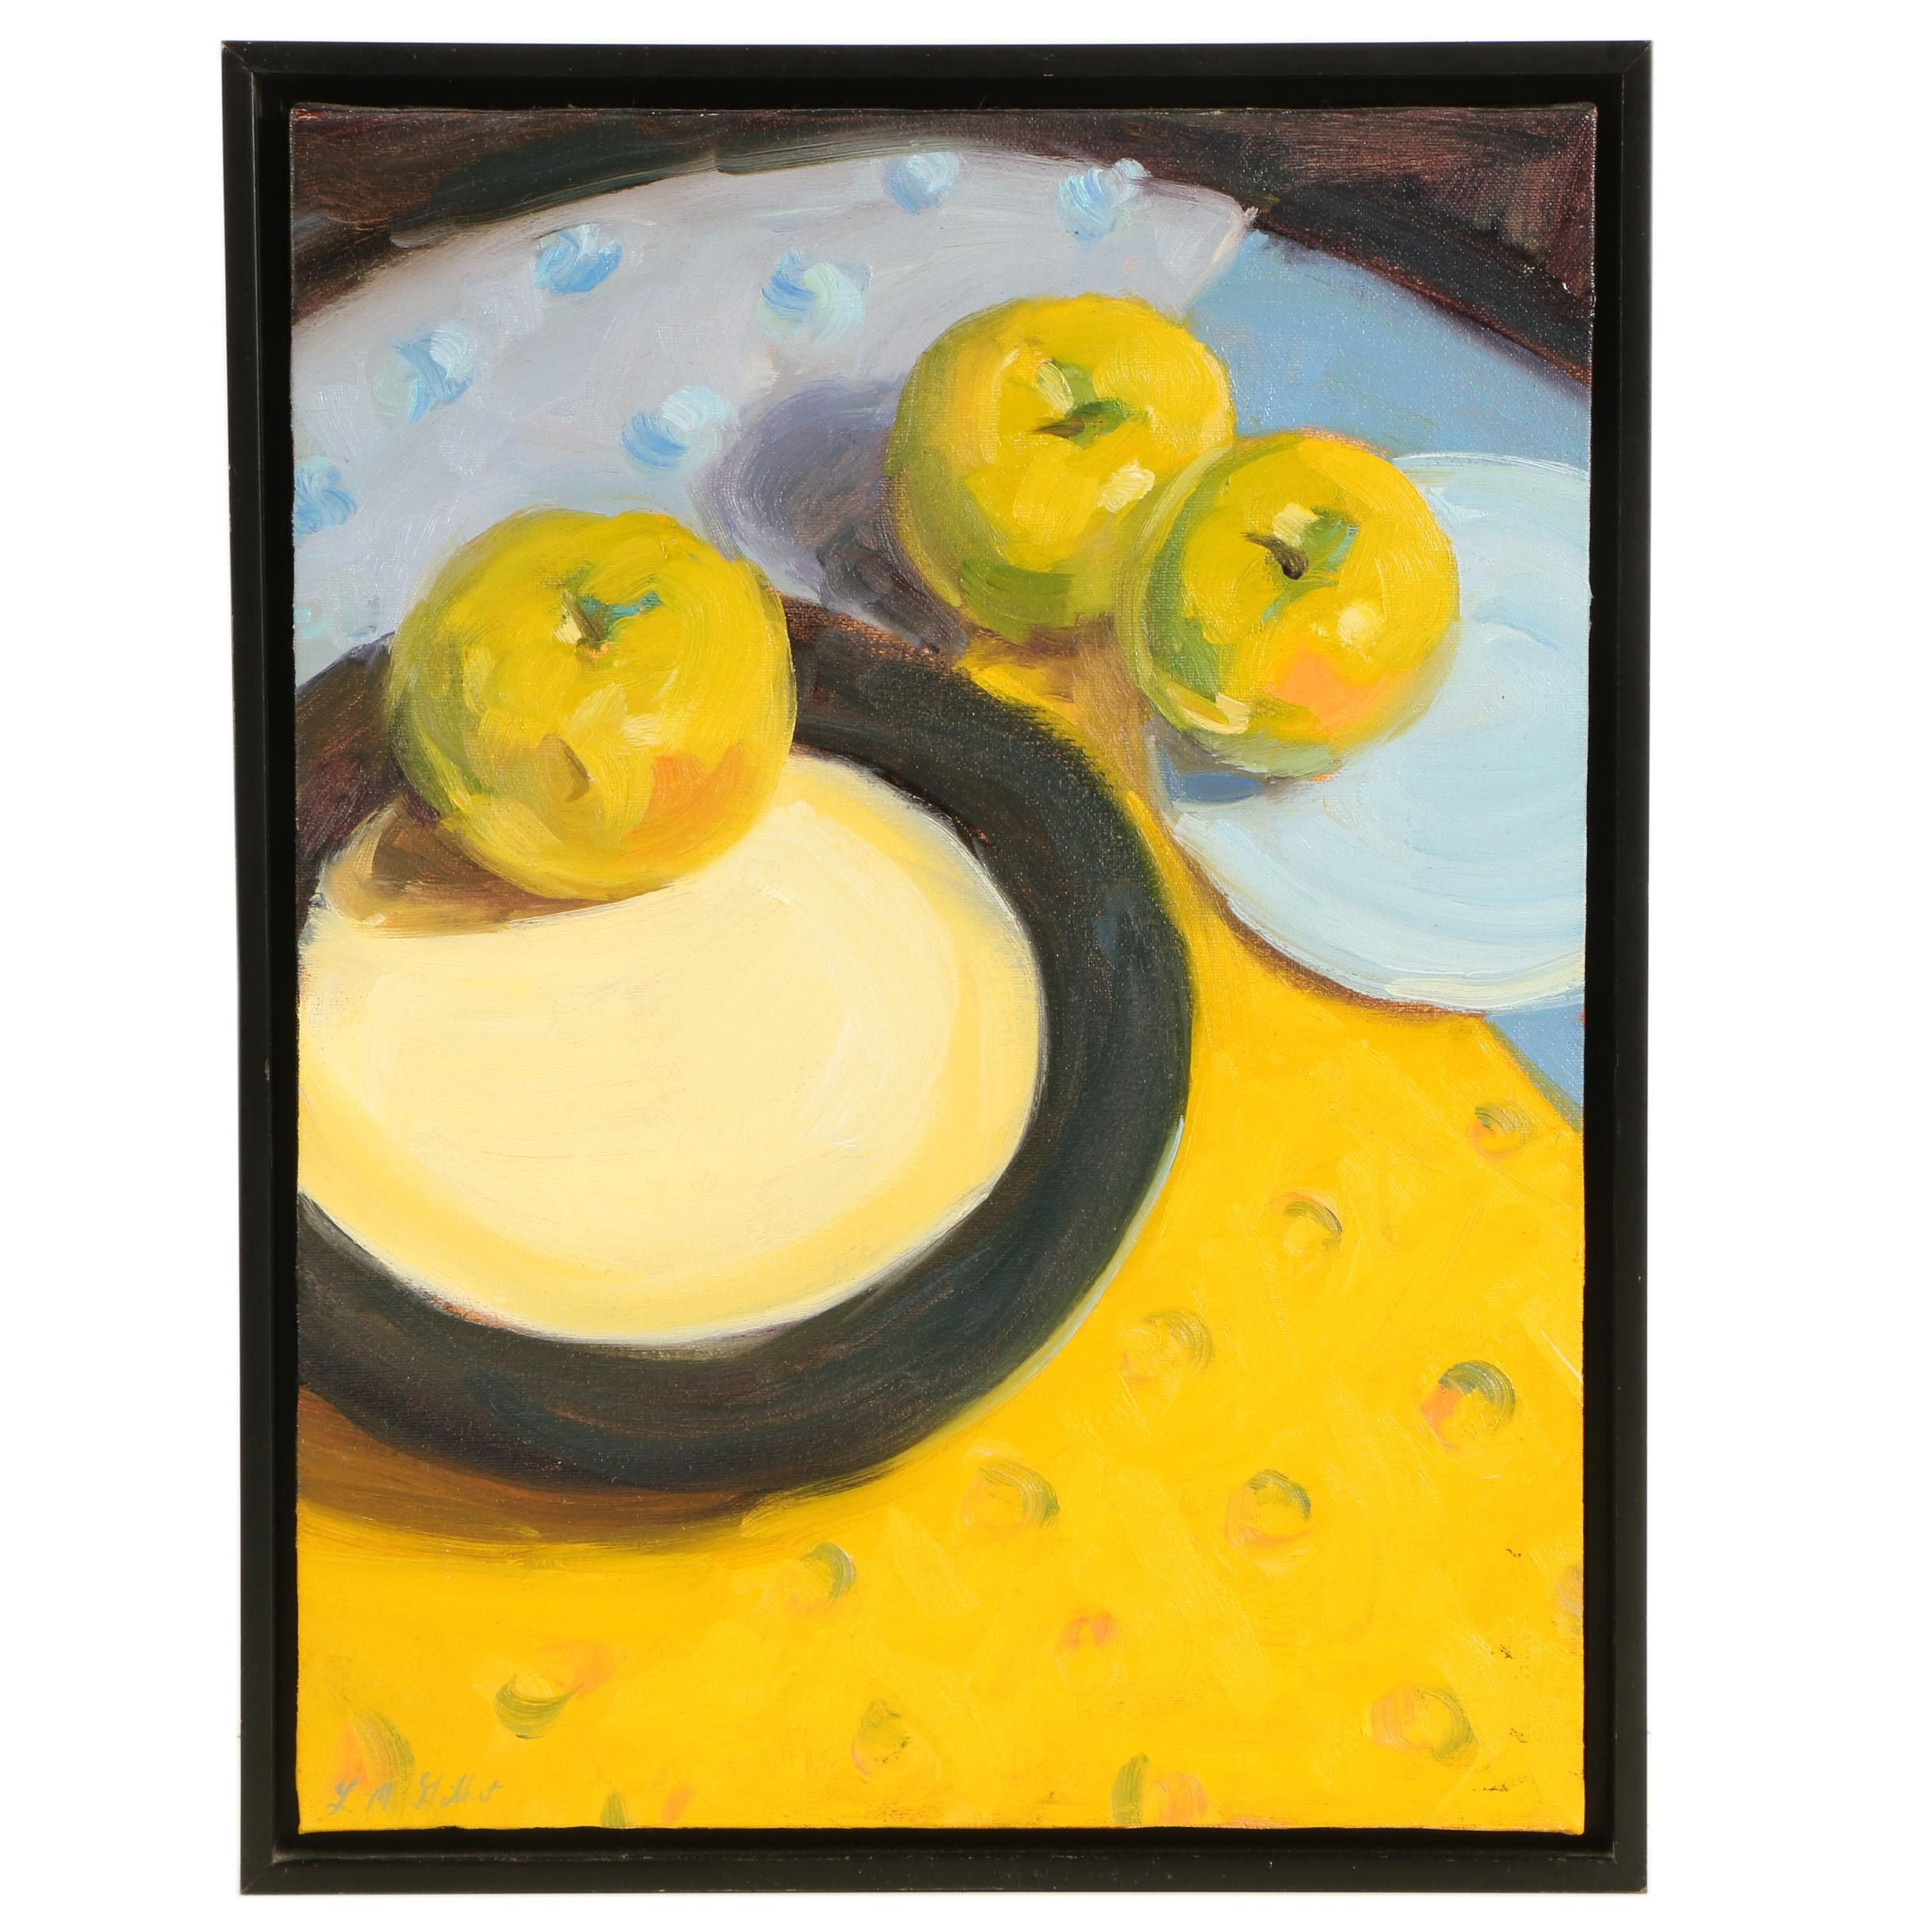 "Leslie McCallen Gilbert Oil Painting on Canvas ""Apples and Patterns"""